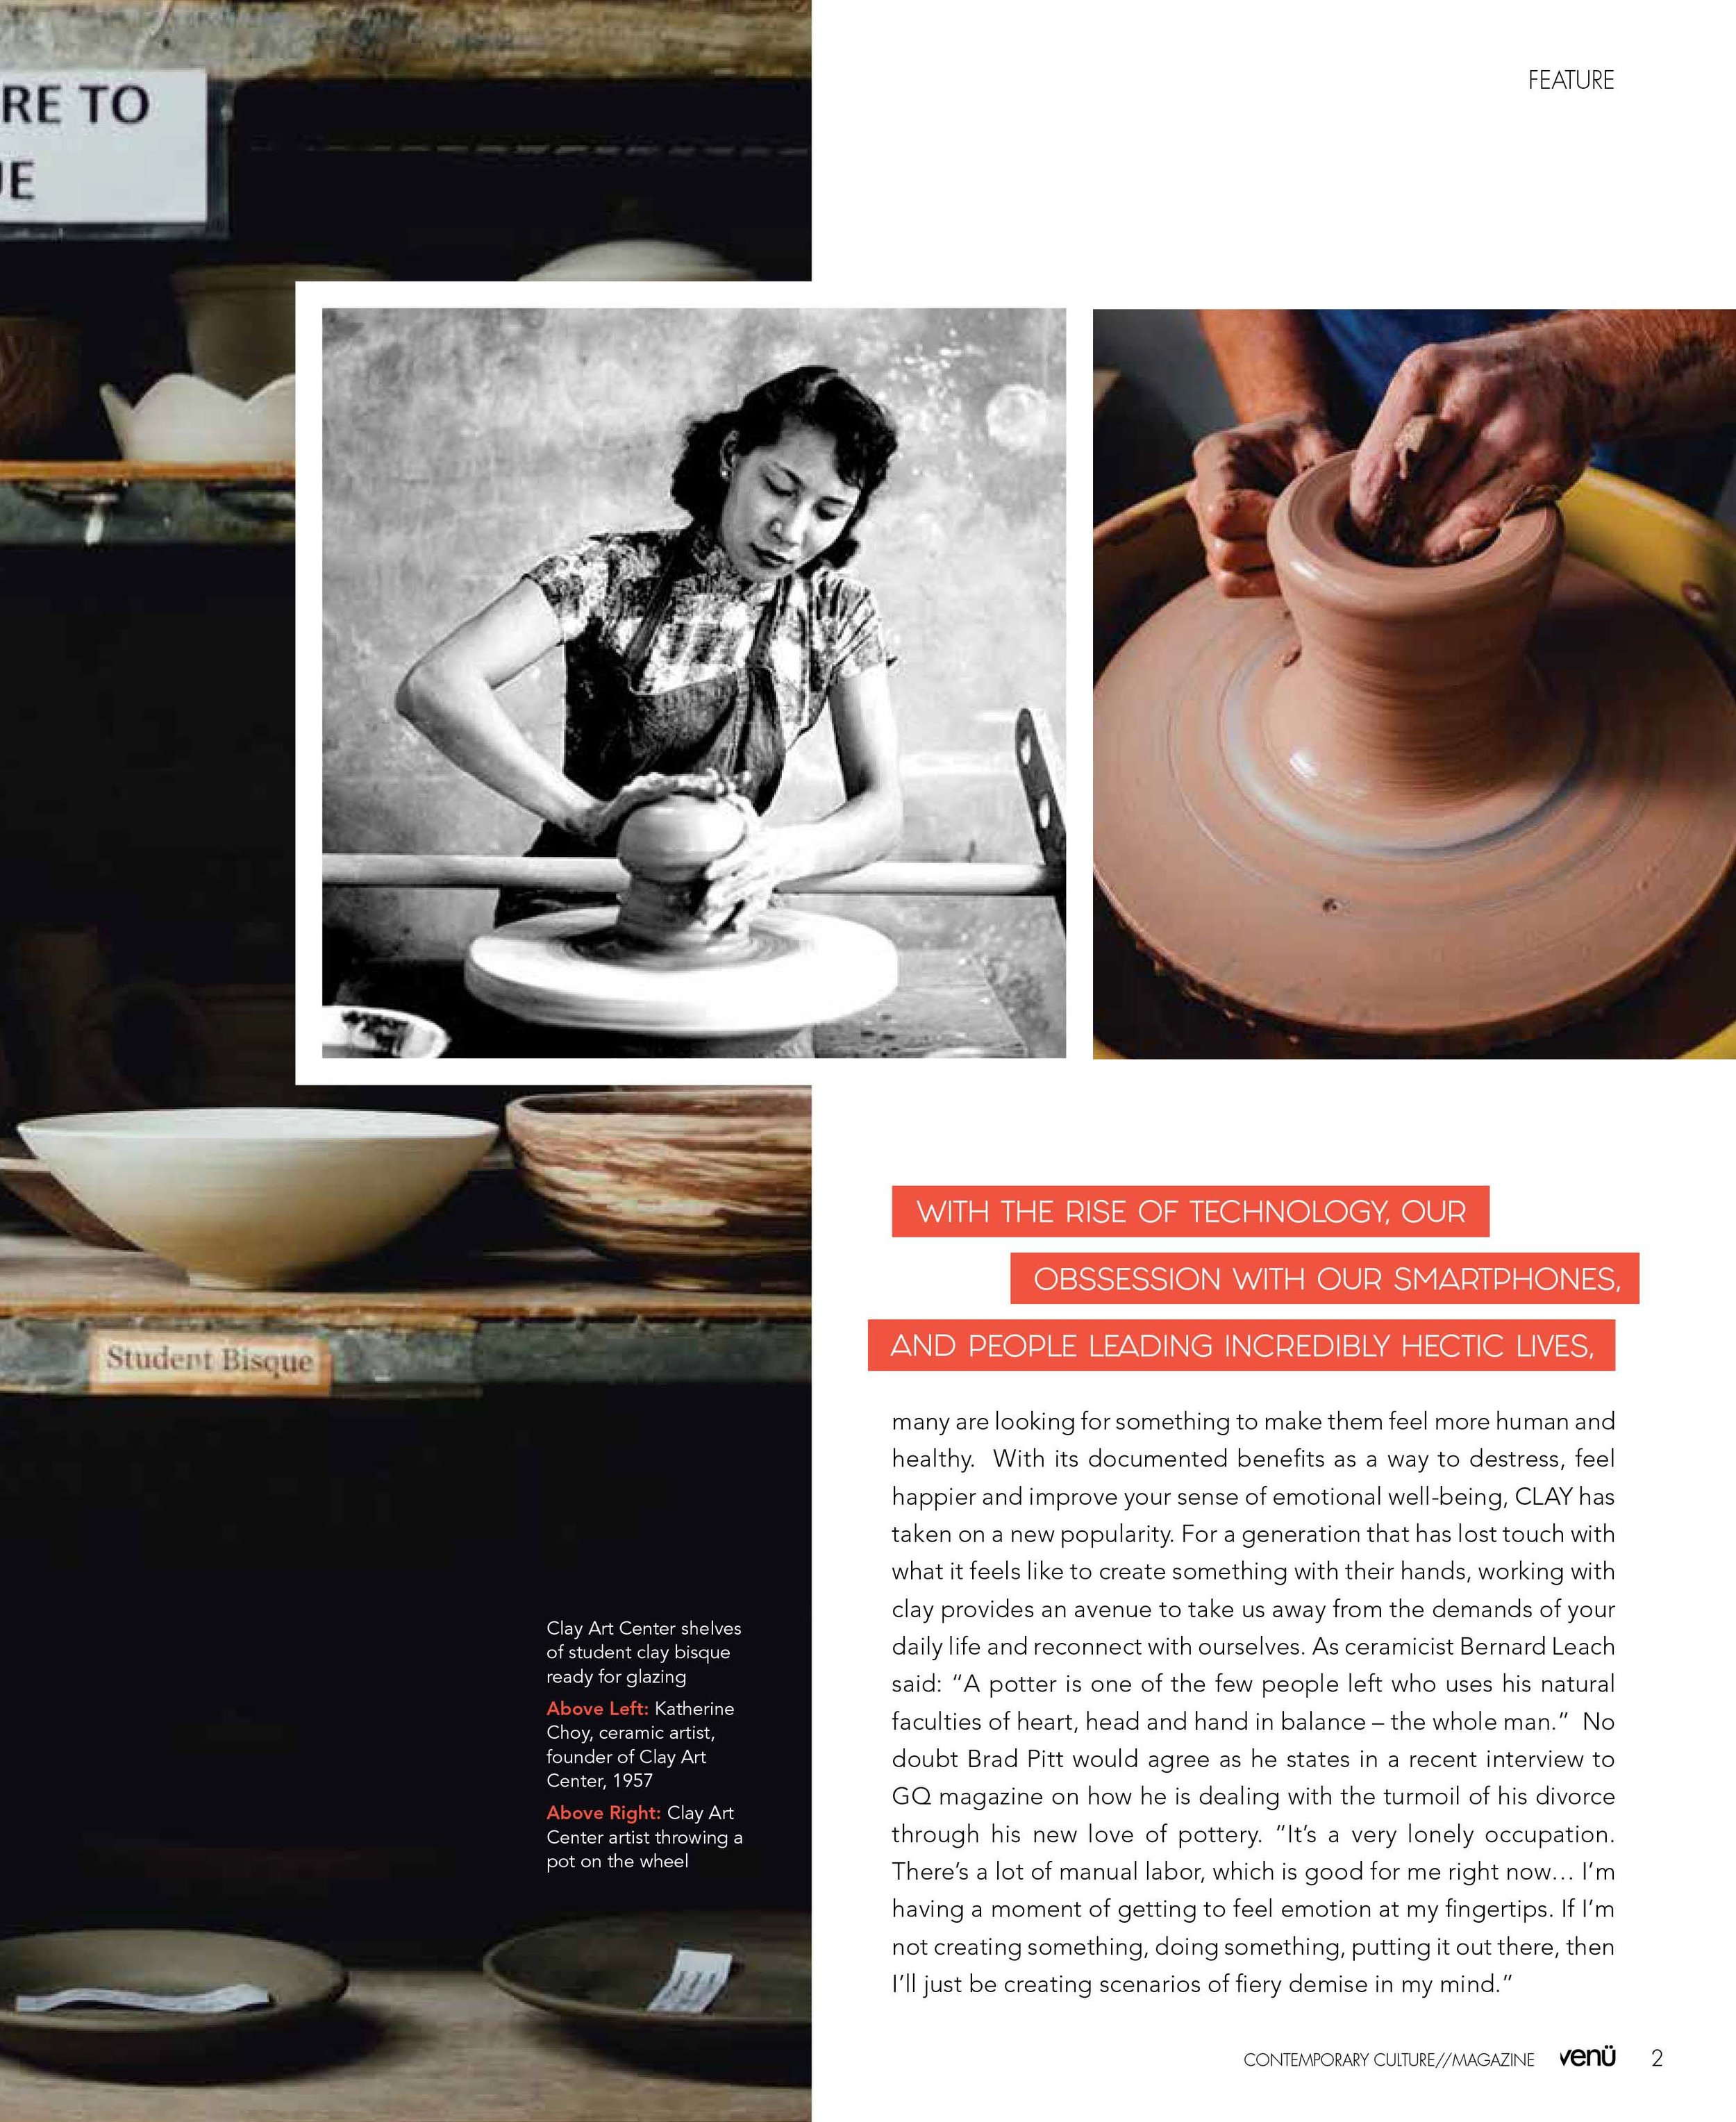 Clay Art Center Venu Magazine Feature Fall 2017-page 2.jpg